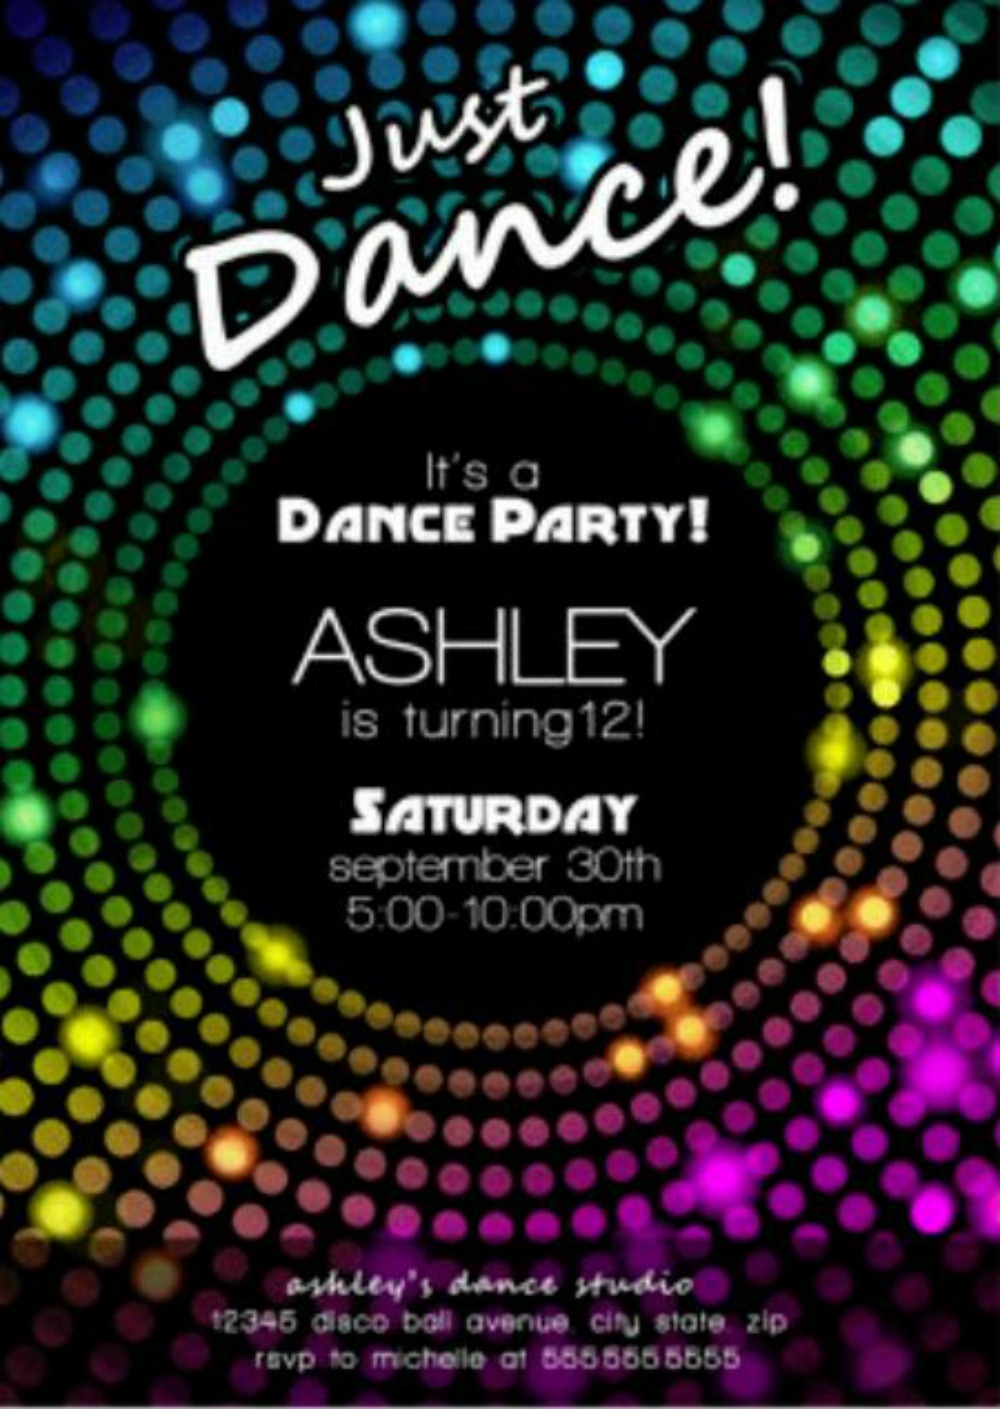 FREE Disco Party Invitation Encore Kids Parties - Disco party invites templates free